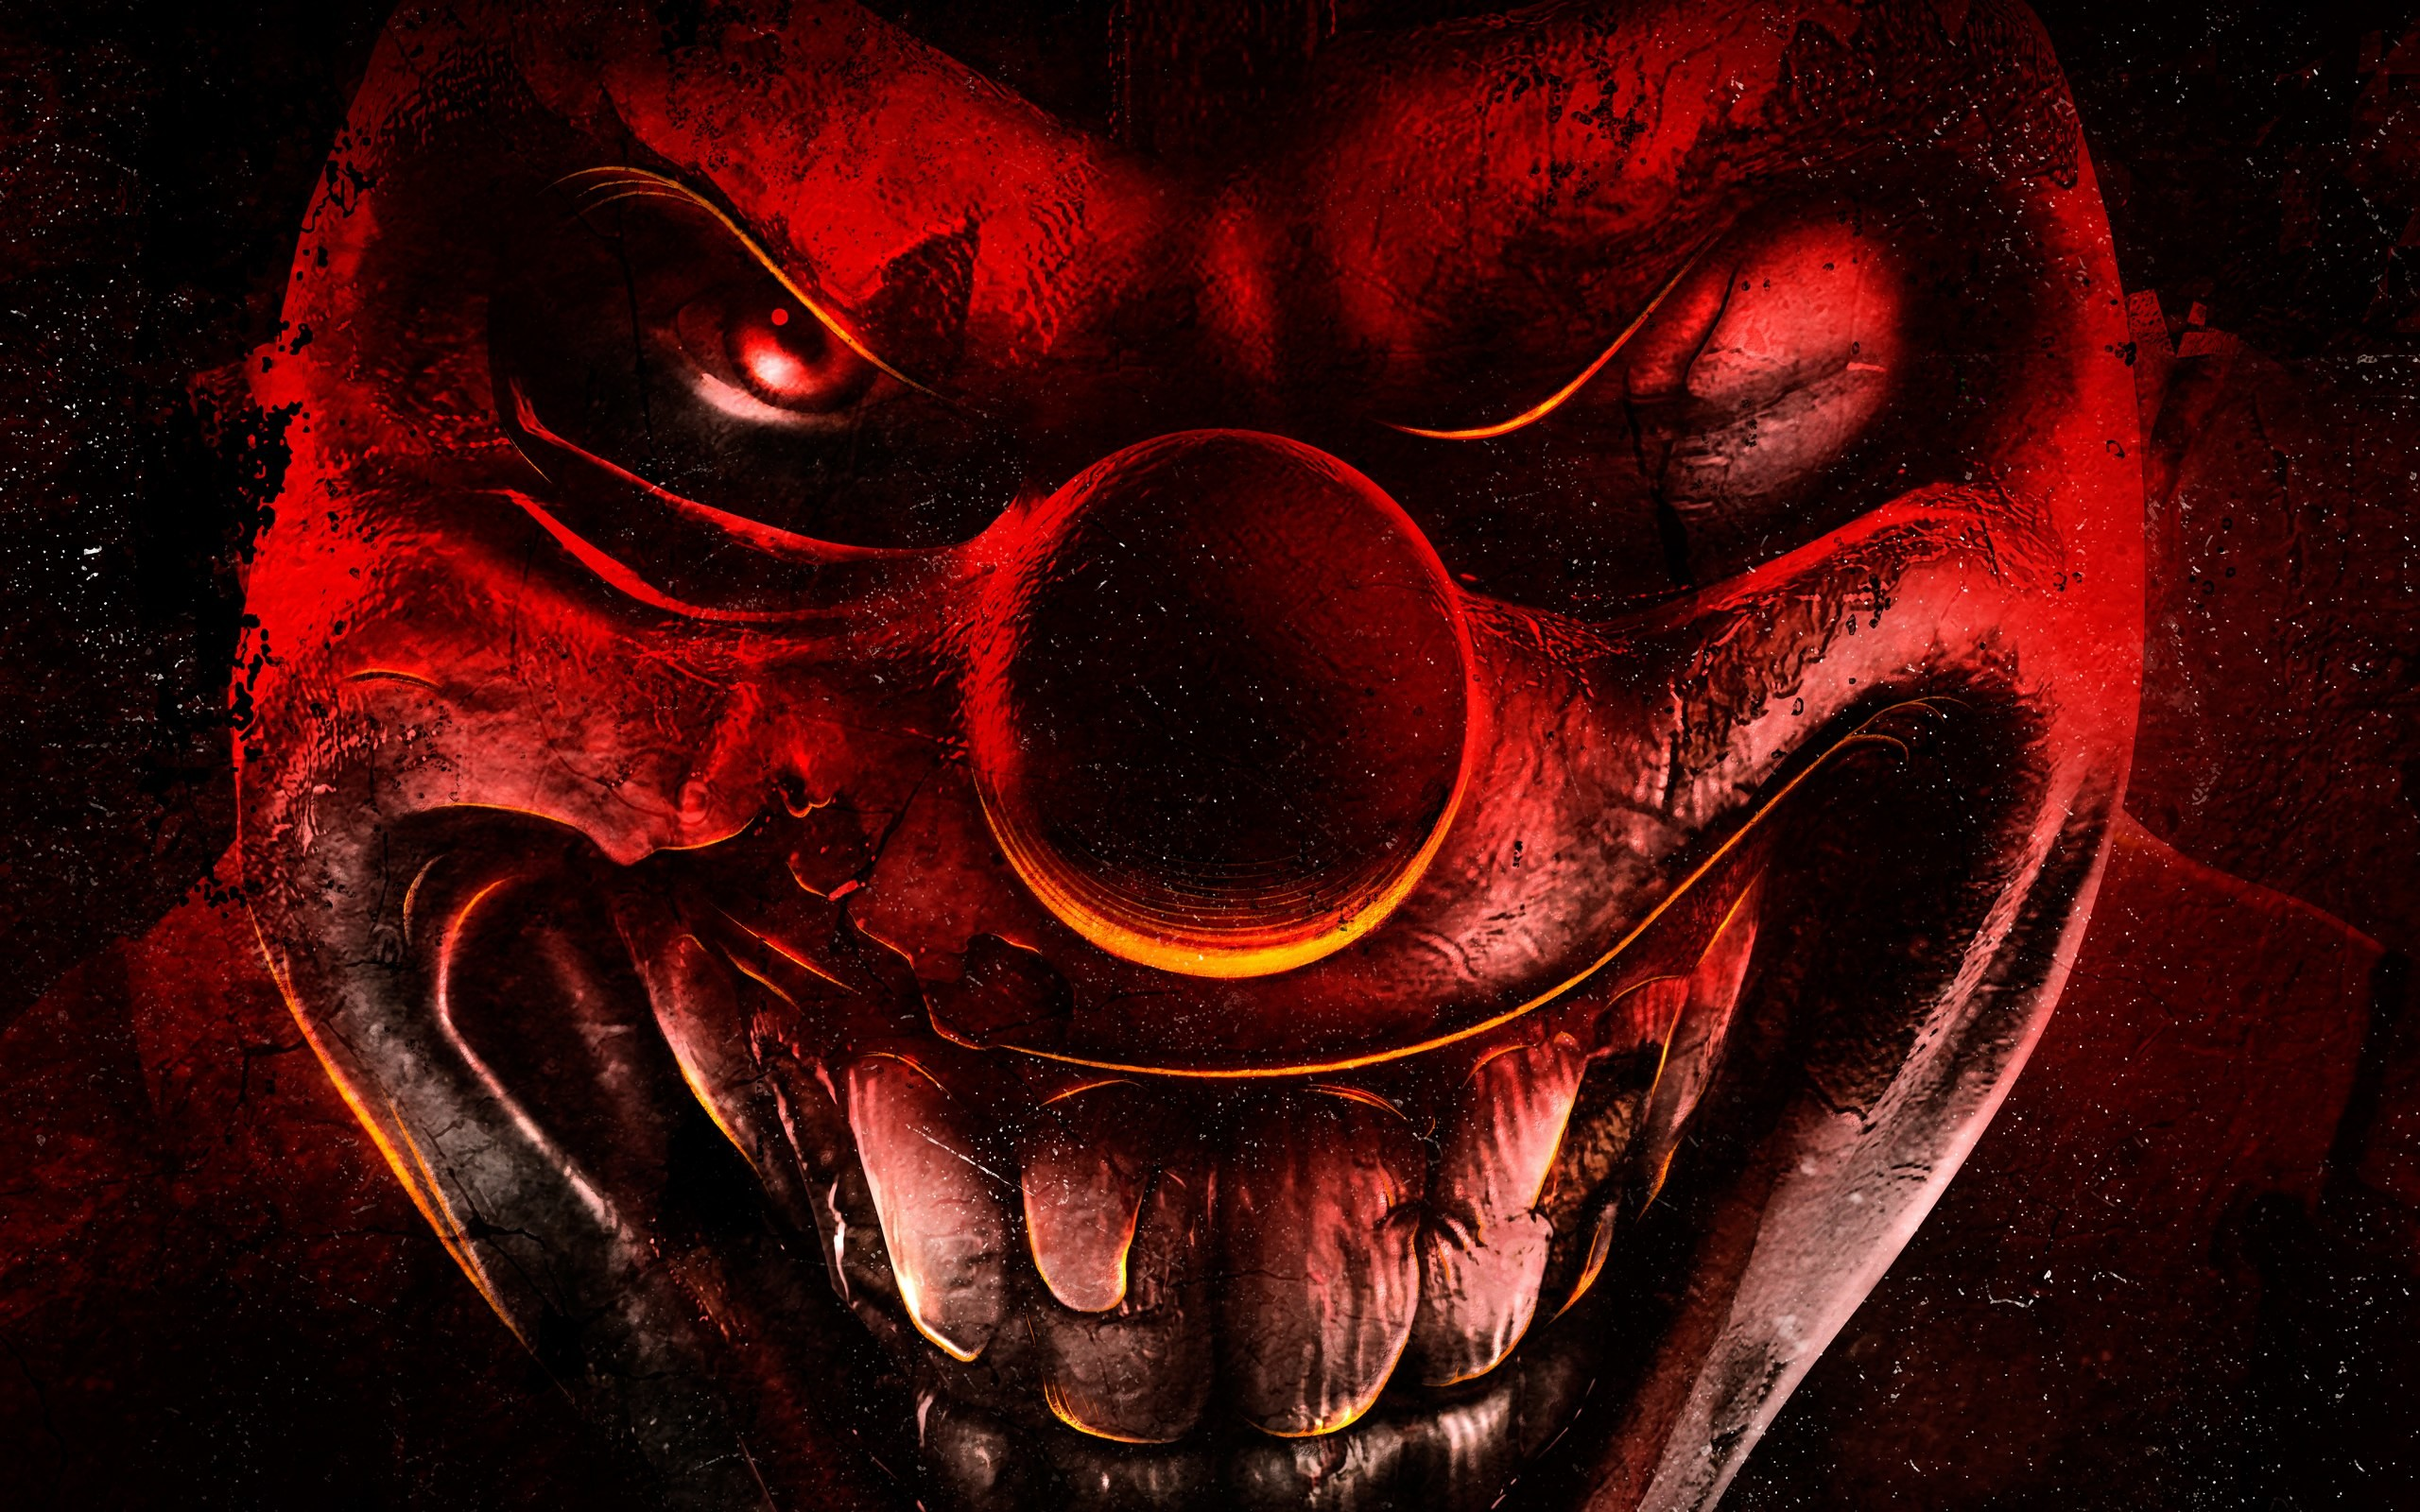 Scary Clown Wallpapers 2560×1600 #22684 HD Wallpaper Res: .